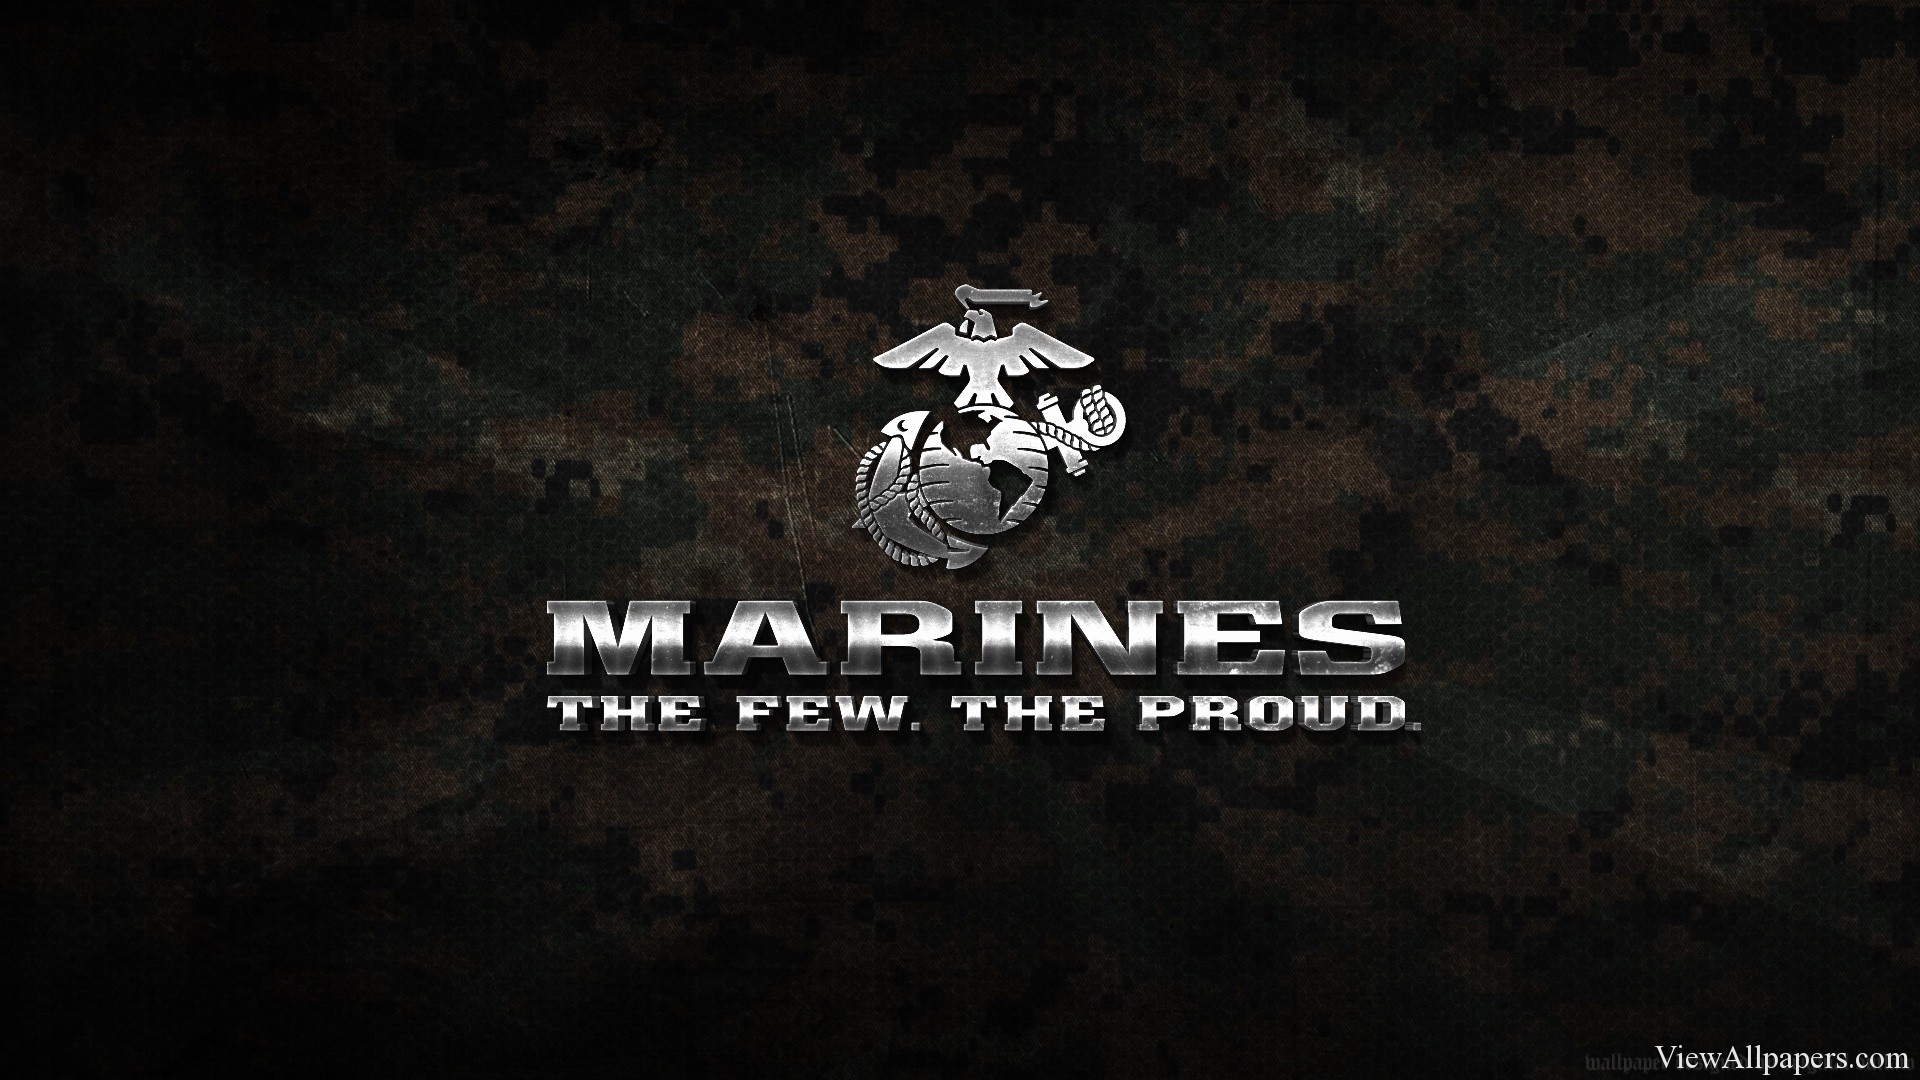 1920x1080 Marine Corps Logo High Resolution download Marine Corps Logo For